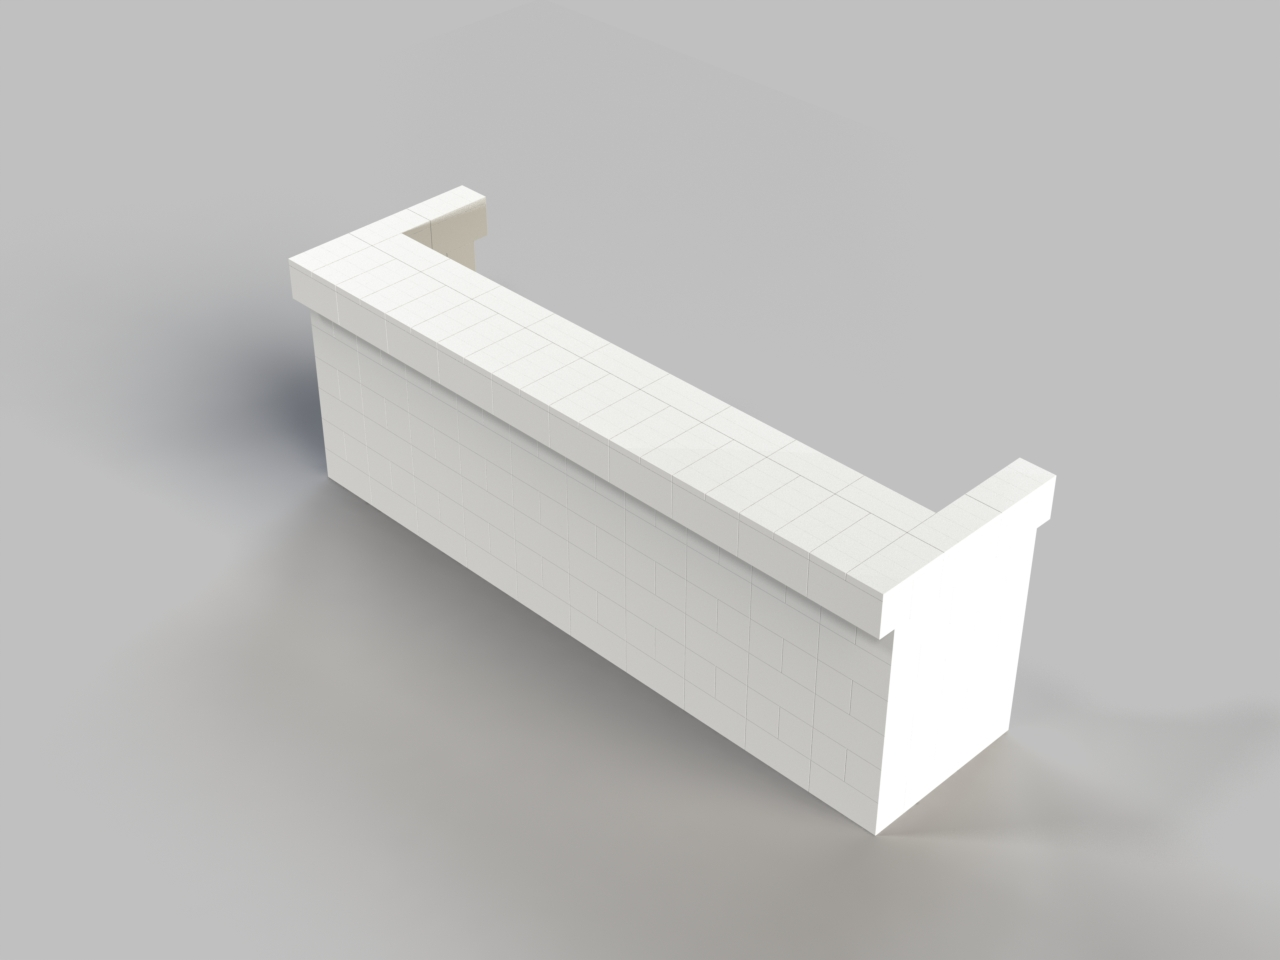 10ft, 1 Layer, Fromt Cantilever Bar